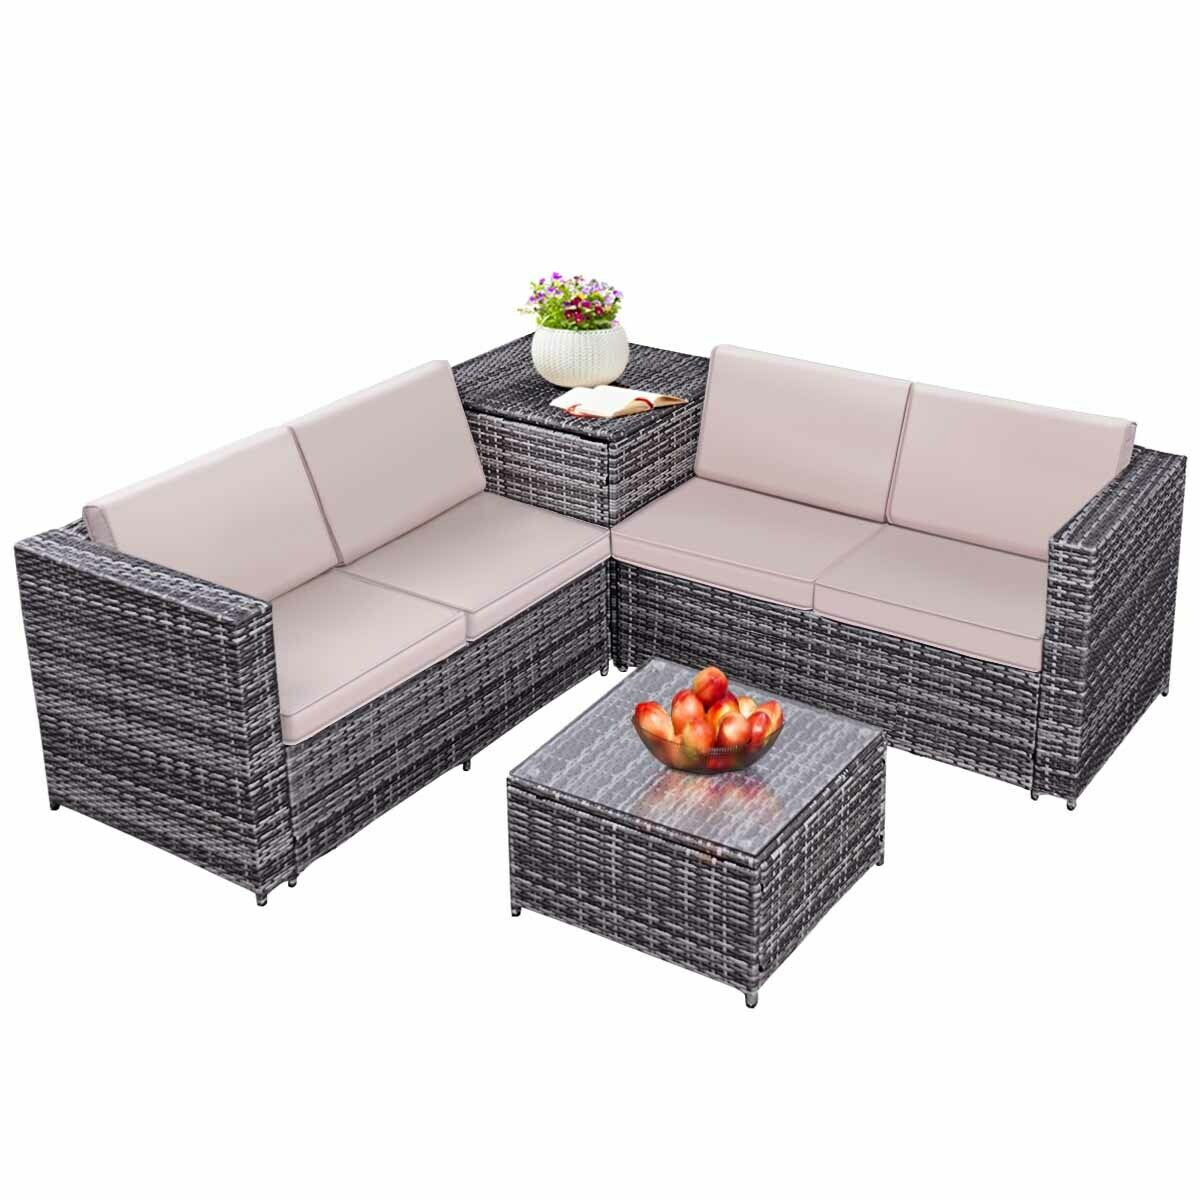 Costway 4pcs Patio Rattan Wicker Furniture Set Sofa Loveseat Cushioned W Storage Box